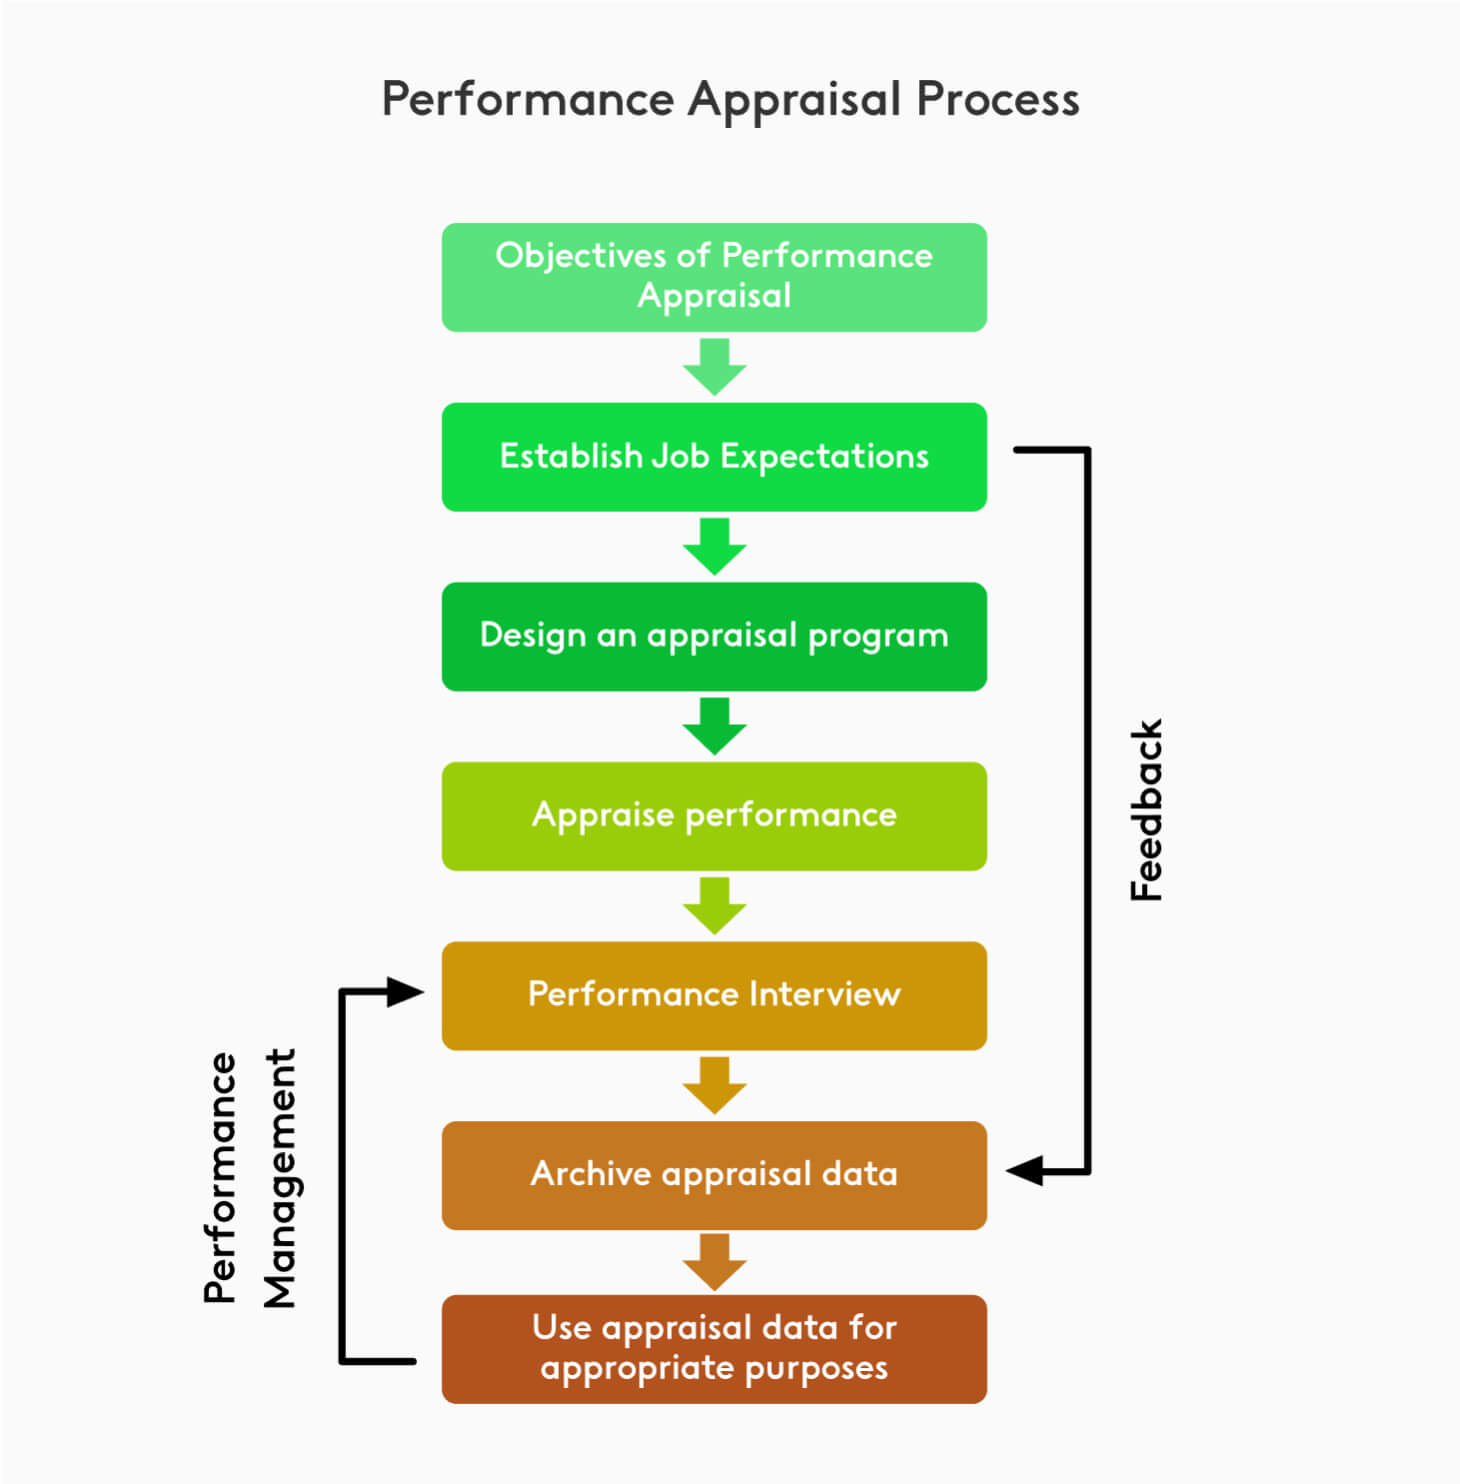 Diagram of the performance appraisal process